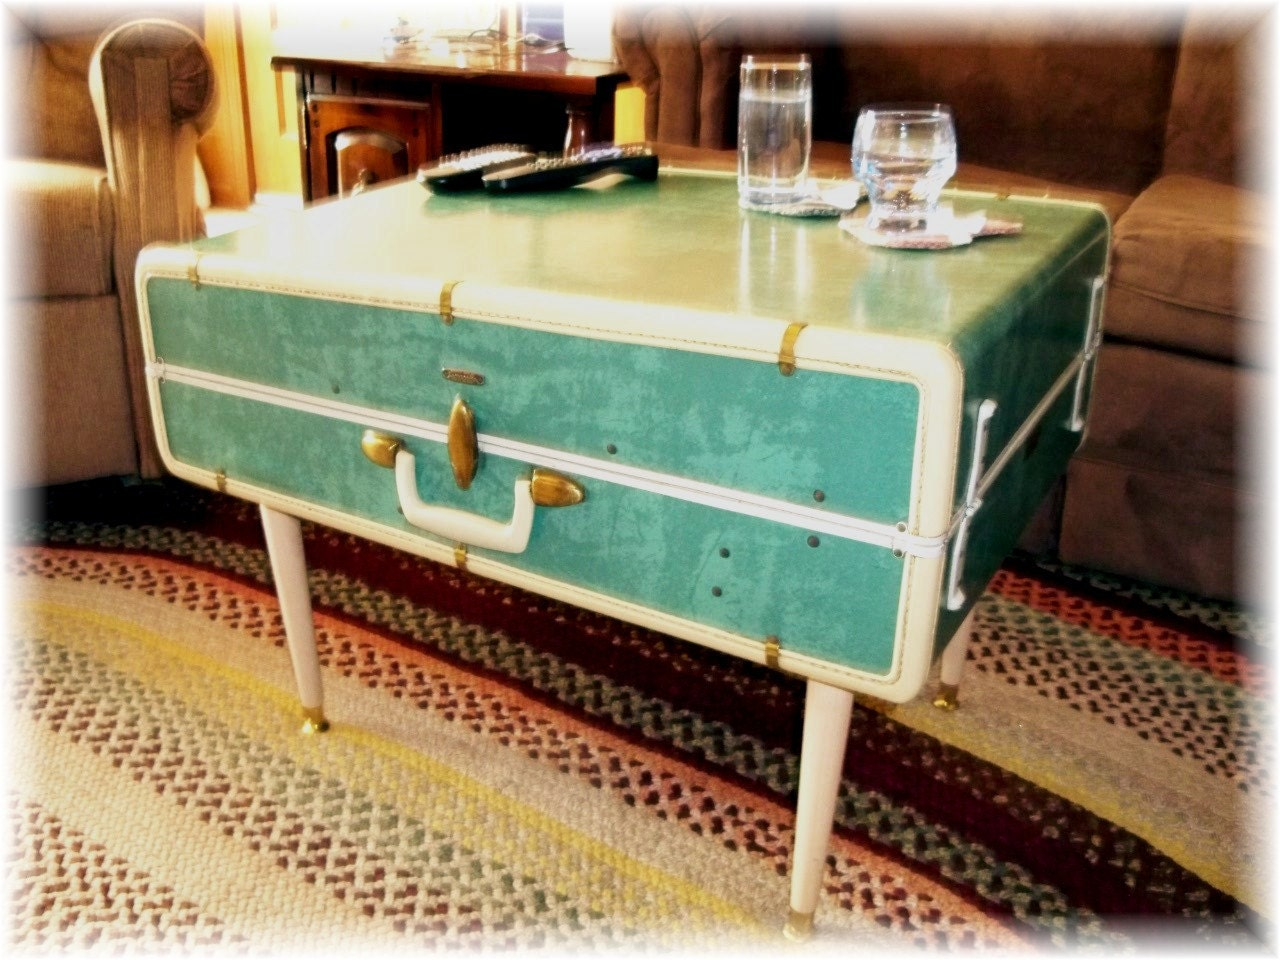 Vintage Suitcase COFFEE TABLE Vintage Lovers Upcycled and ReNeWeD Large Samsonite Luggage Wardrode Traveling Trunk End Table